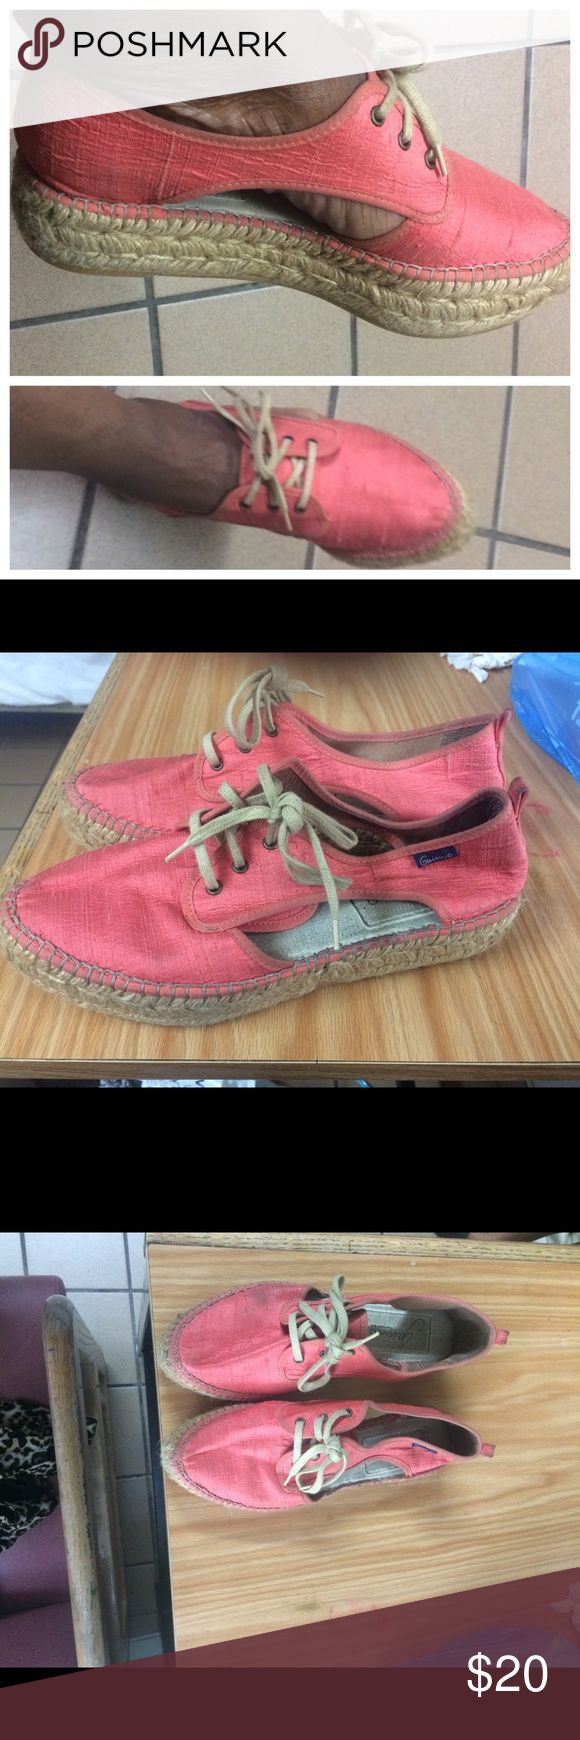 ‼️MAKE OFFER‼️ Espadrille with Double Sole Sz 8 Great summer shoes! Comfy espadrilles with side cut-outs and tie shoe laces. Coral color. Small smudge on toe right side. Price reflects. Good condition Gairno Shoes Espadrilles